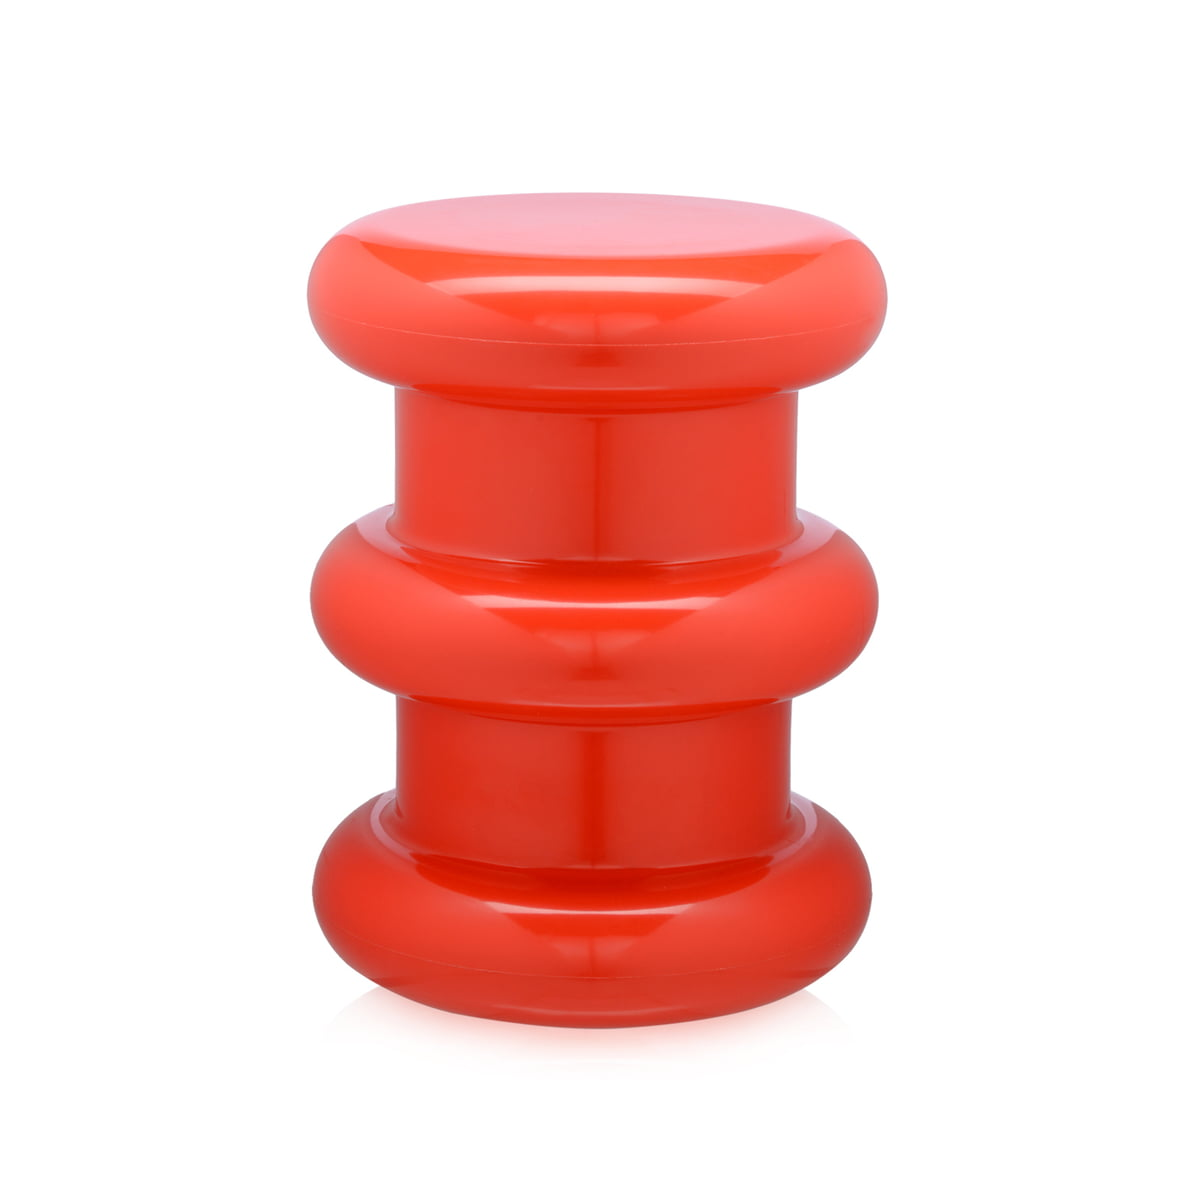 Pilastro Stool / Side Table By Kartell In Red